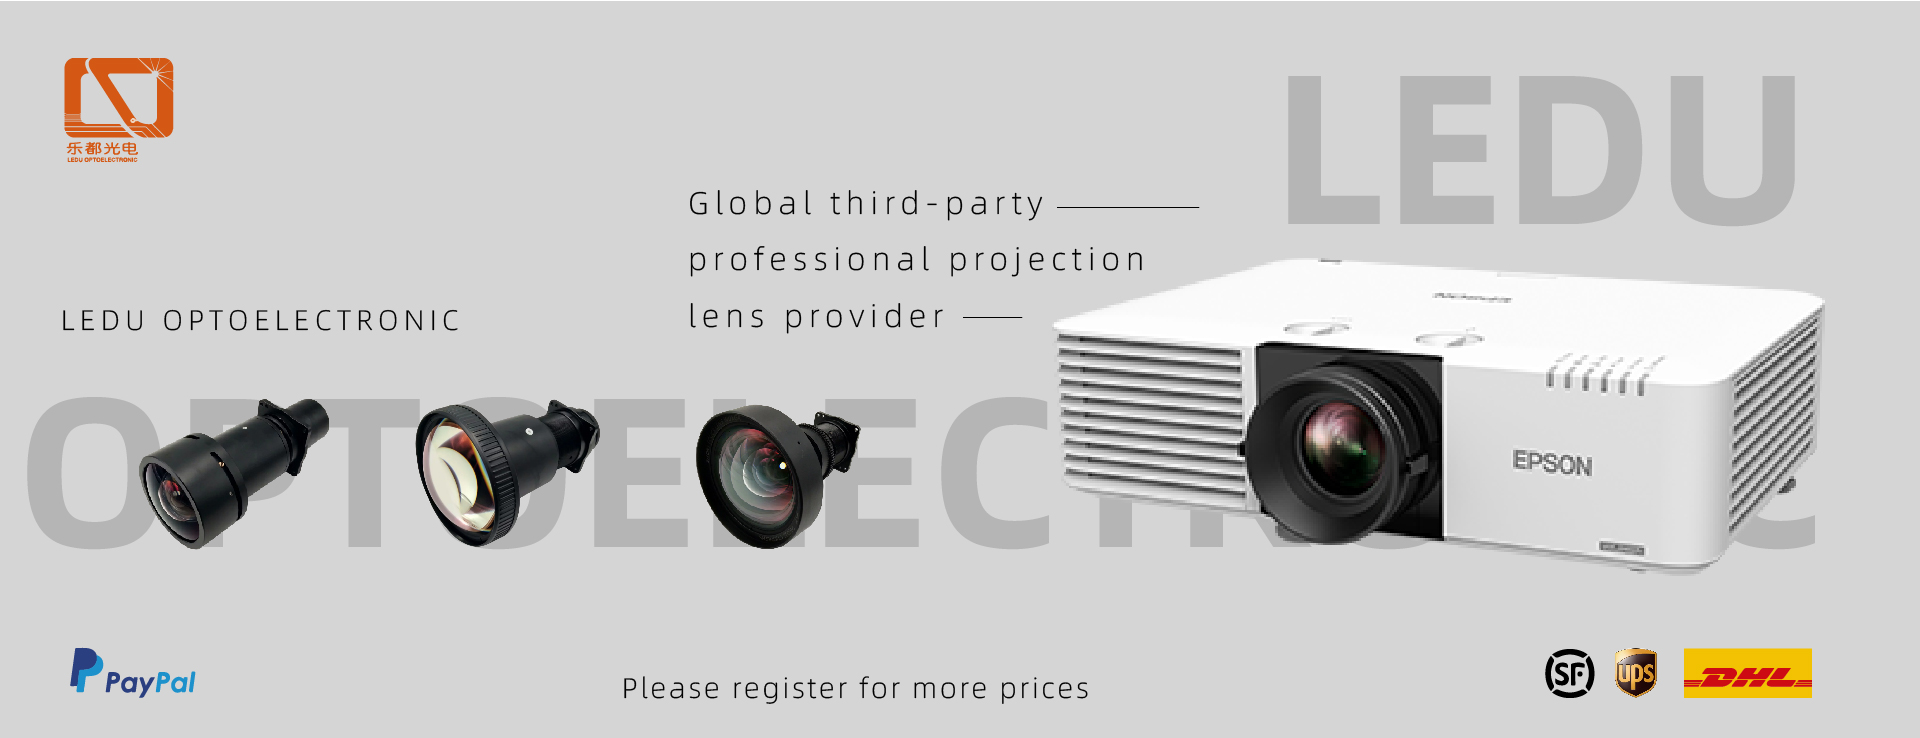 Puson laser LCD project investment, projector conversion short-focus lens throw ratio range 0.6-0.8: 1